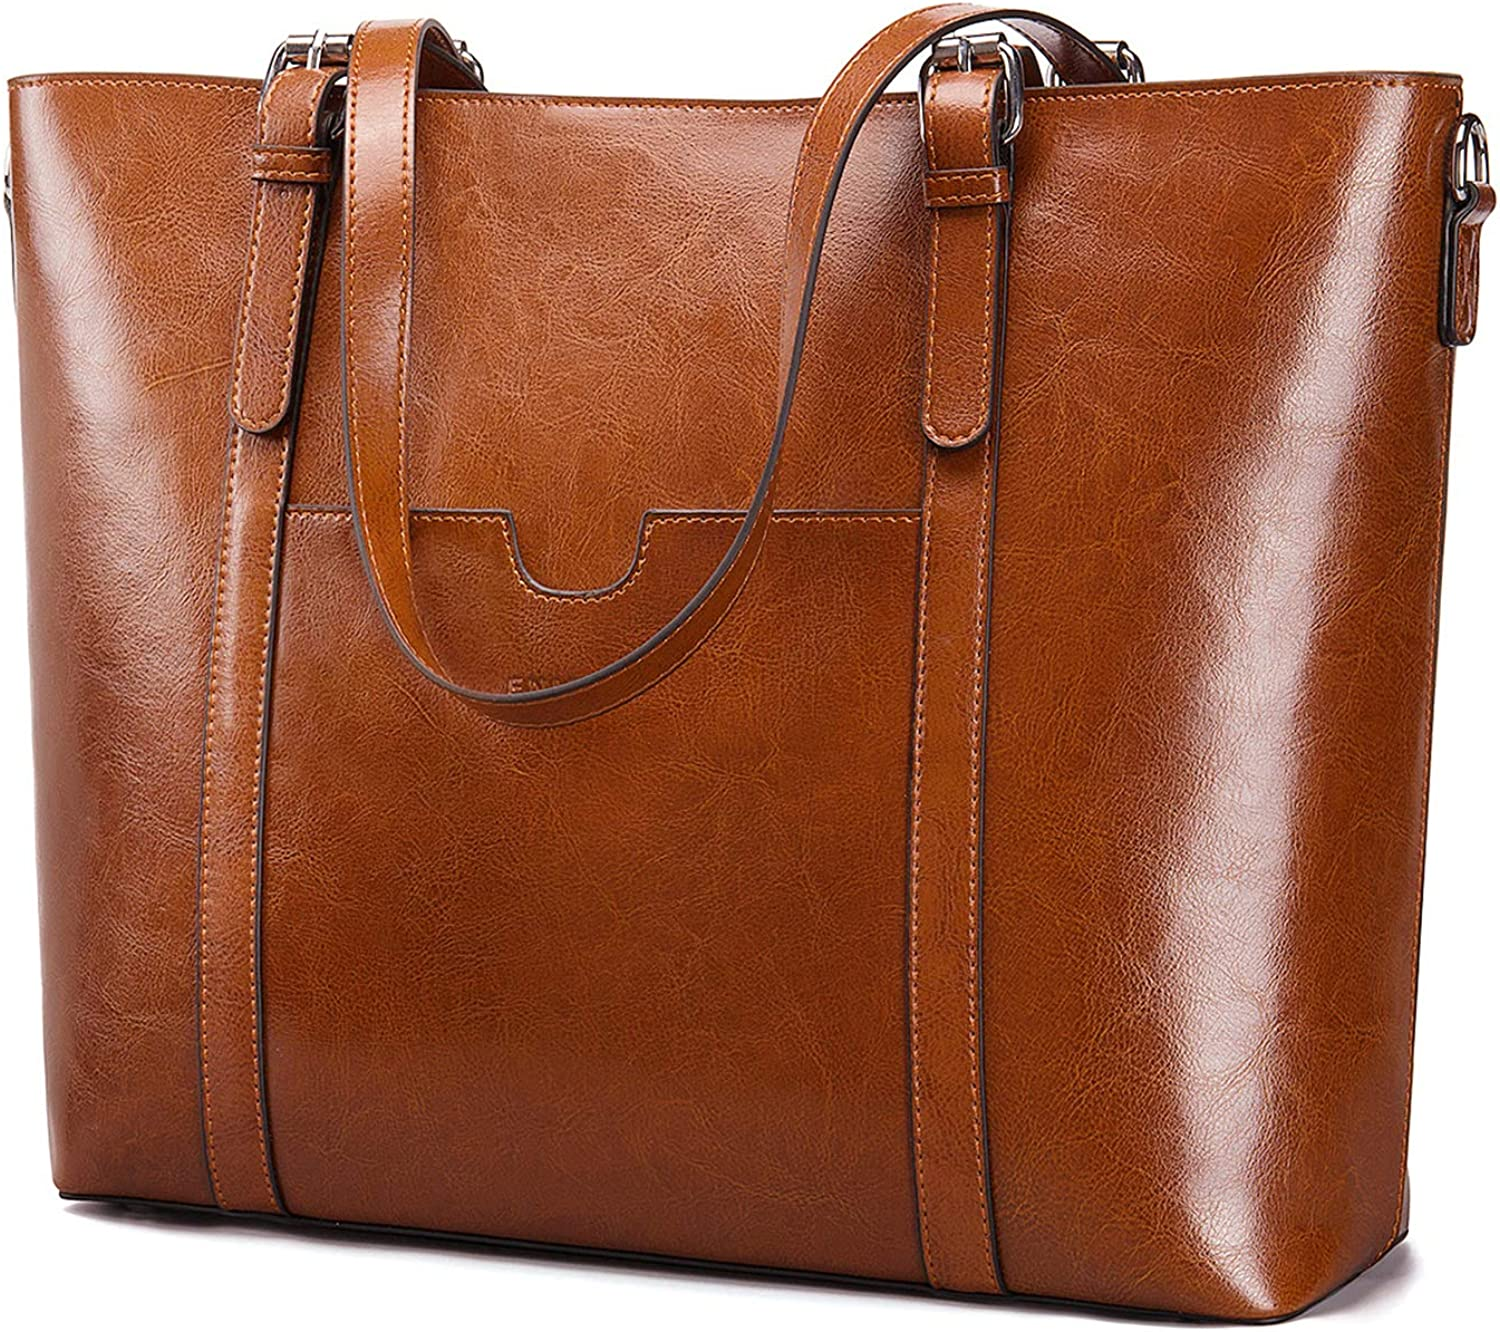 Women Leather Briefcase Bag Laptop Tote Handbags 15.6 Inch Large Capacity Office Shoulder Bags Work Purse